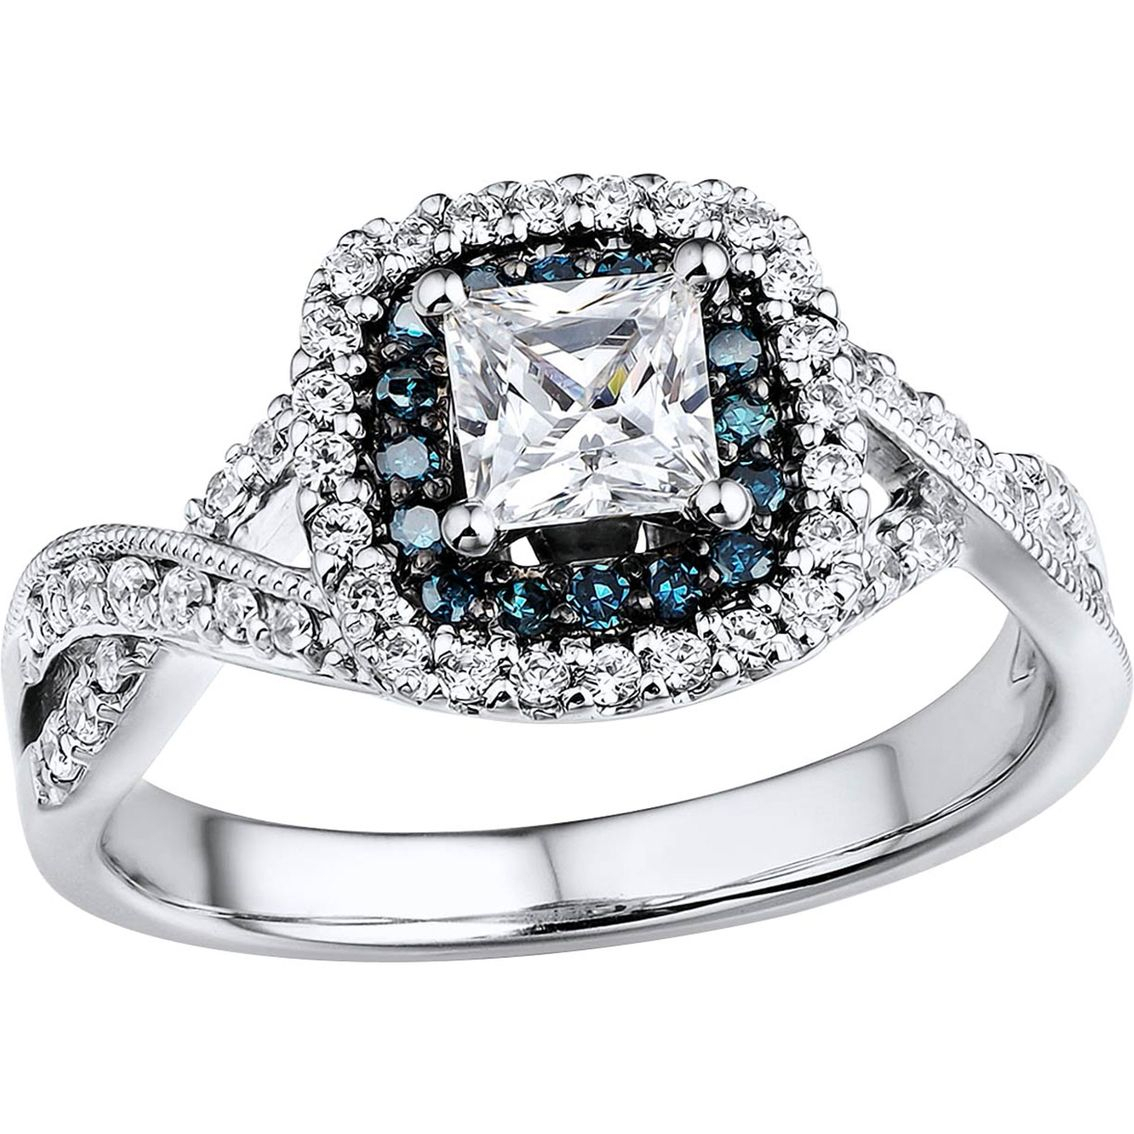 Elegant In Every Detail, This Engagement Ring Boasts A 1/2 Intended For Most Current Enhanced Blue And White Diamond Anniversary Bands In White Gold (View 9 of 25)